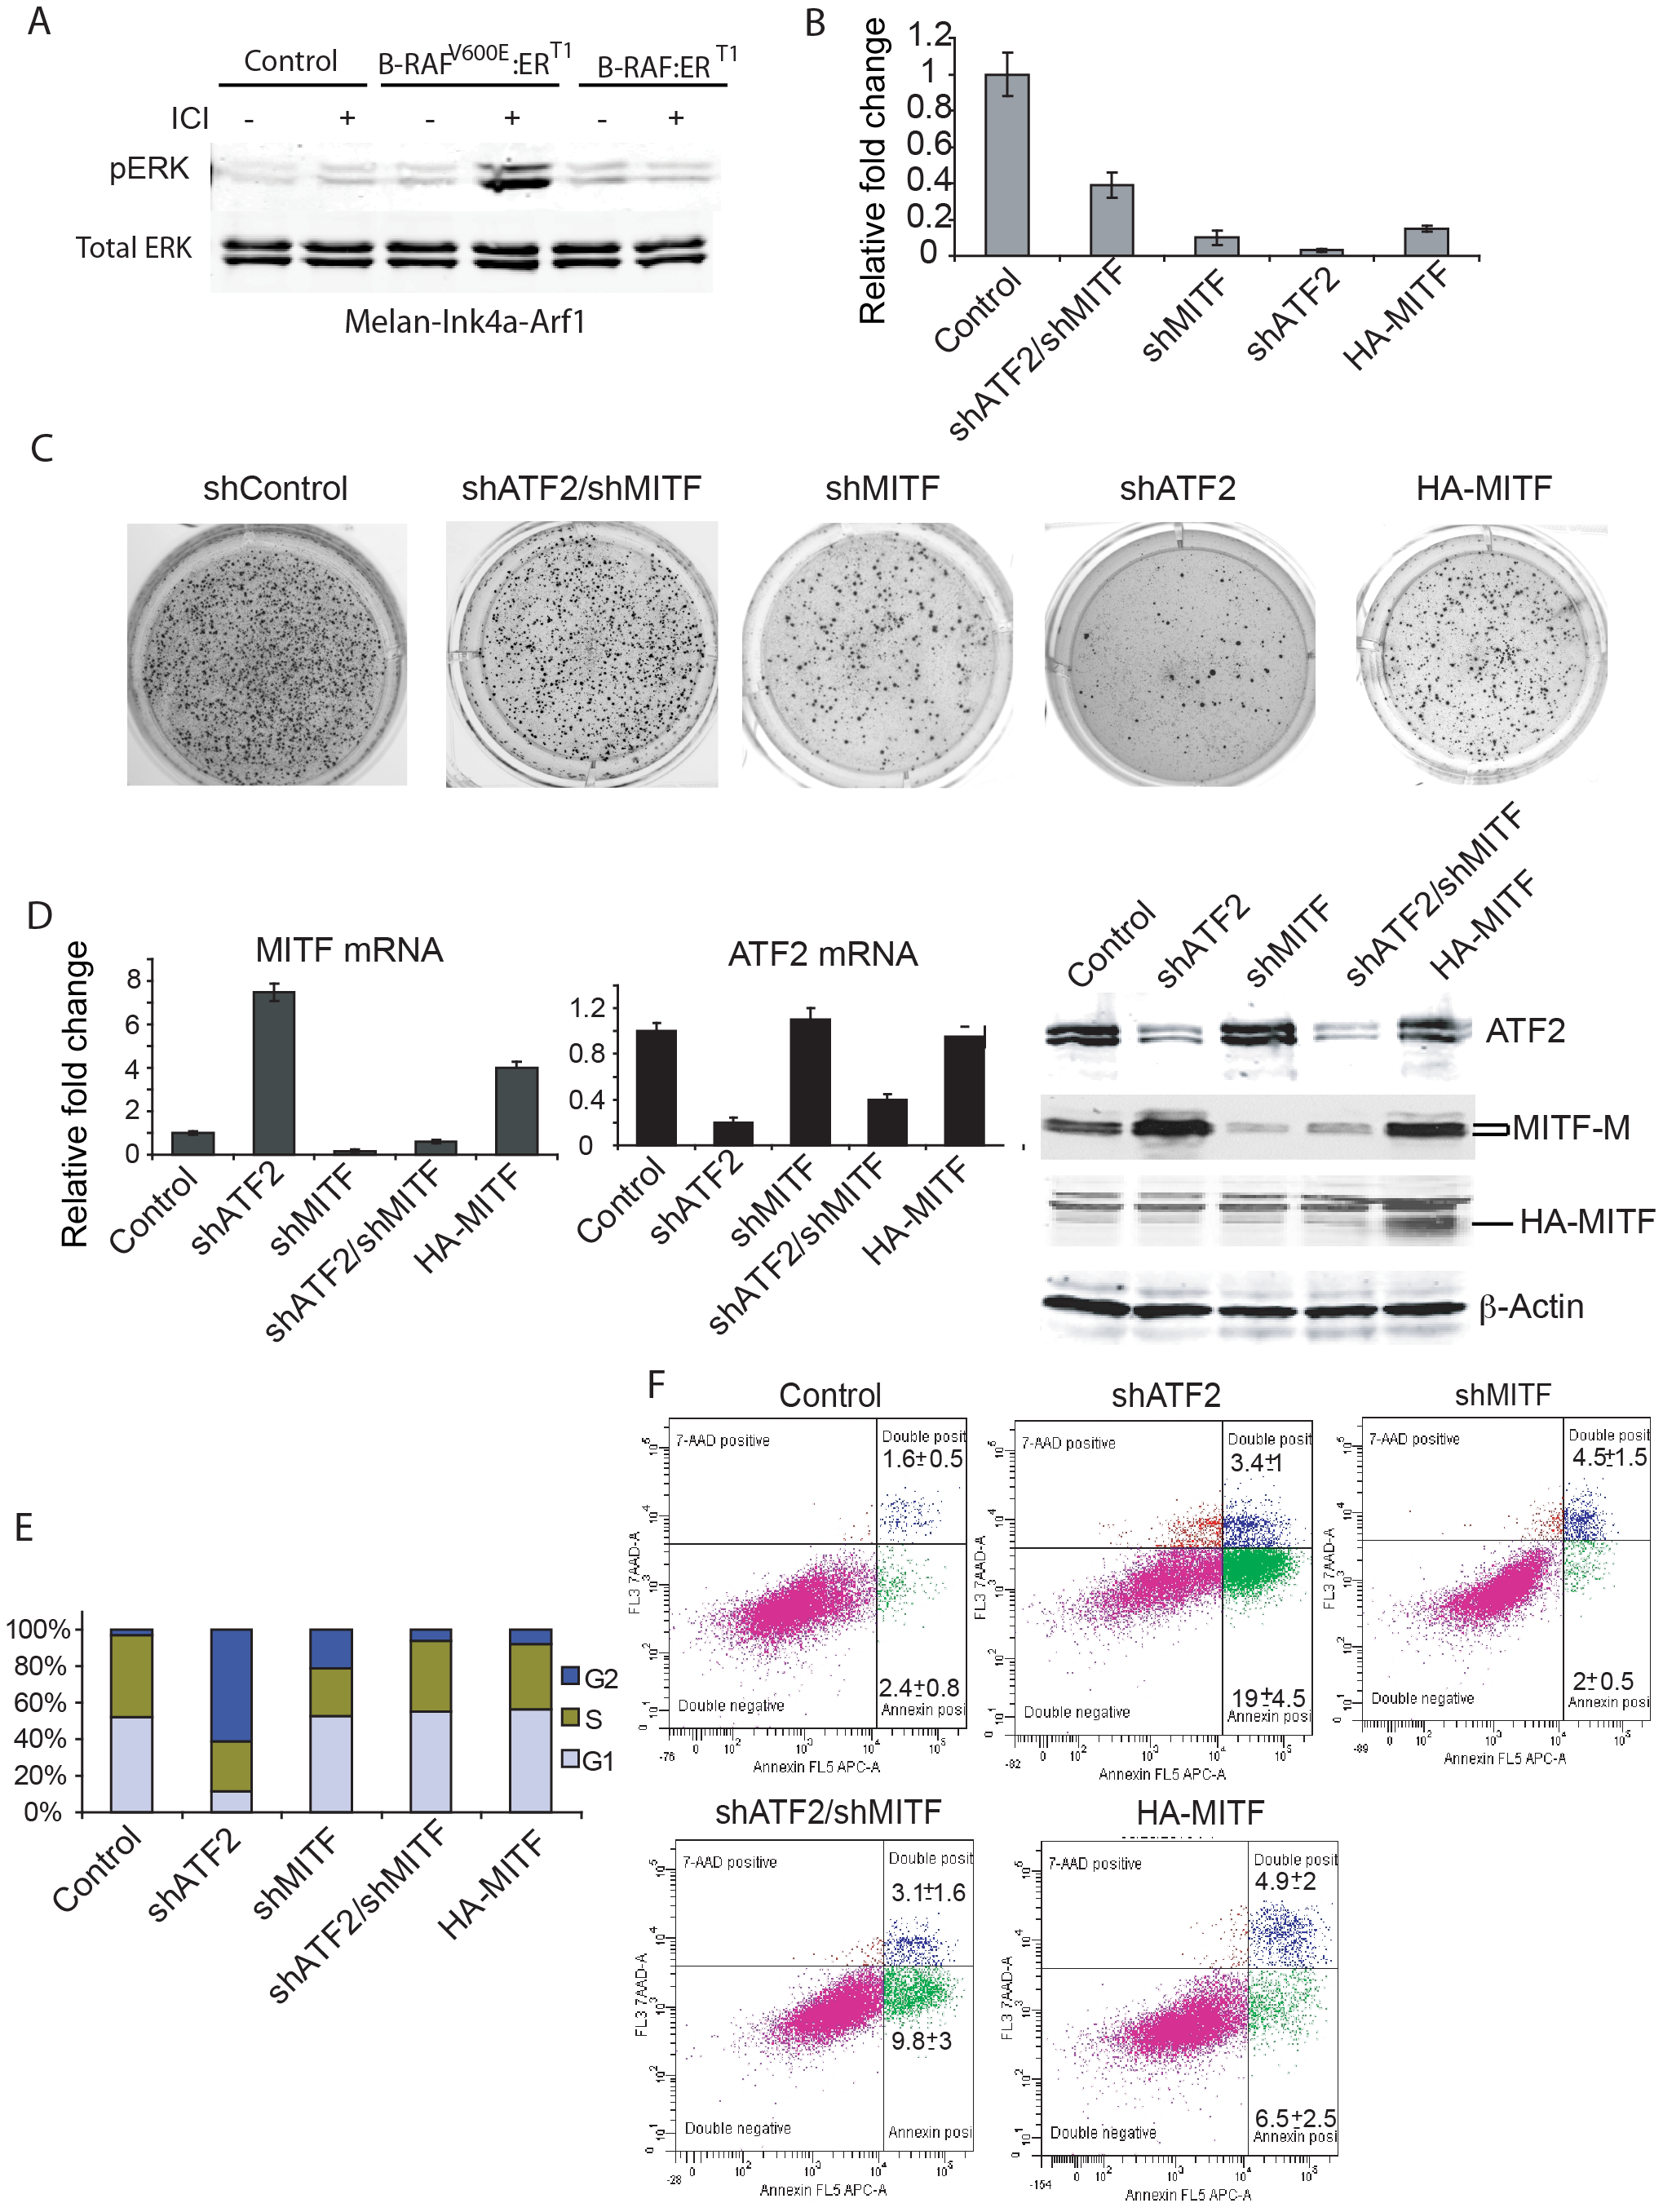 MITF down-regulation partially rescues colony formation by BRAF<sup>V600E</sup>-expressing mouse melanocytes with inhibited ATF2 expression.